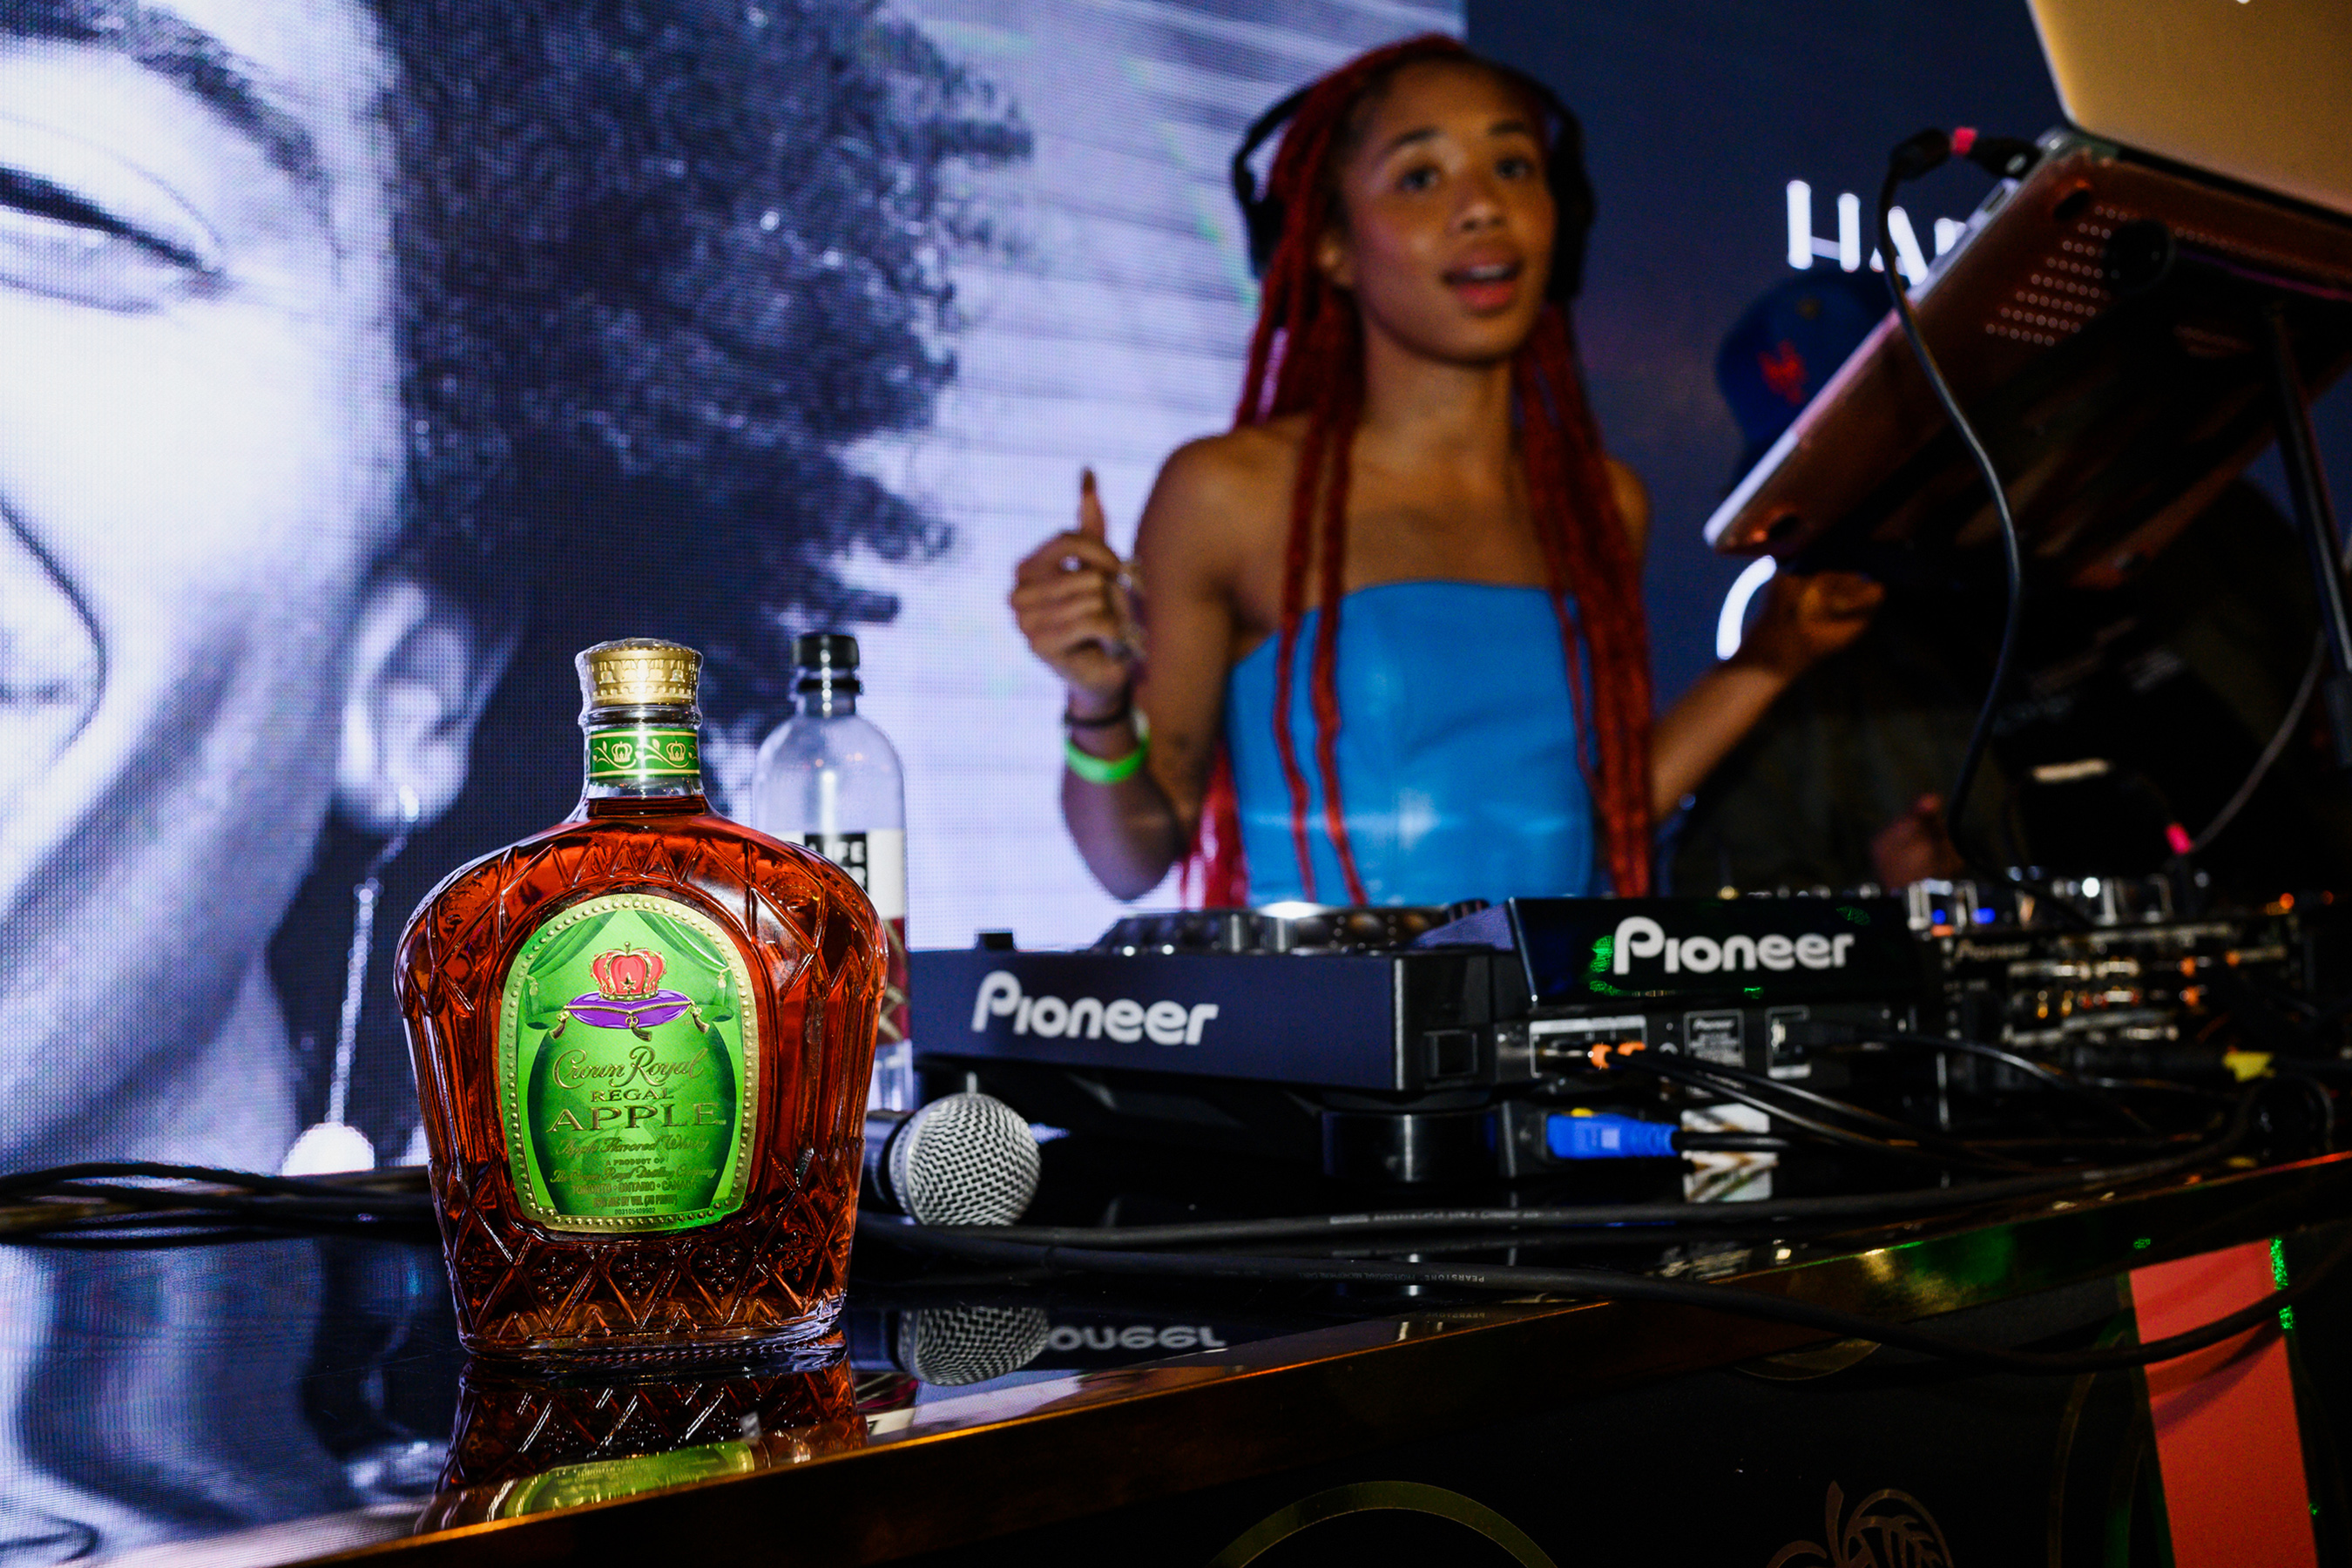 During the Crown Royal Regal Apple x Harlem's Fashion Row after-party, deejay Kitty Ca$h spinned into the evening while guests sipped Crown Apple cocktails.